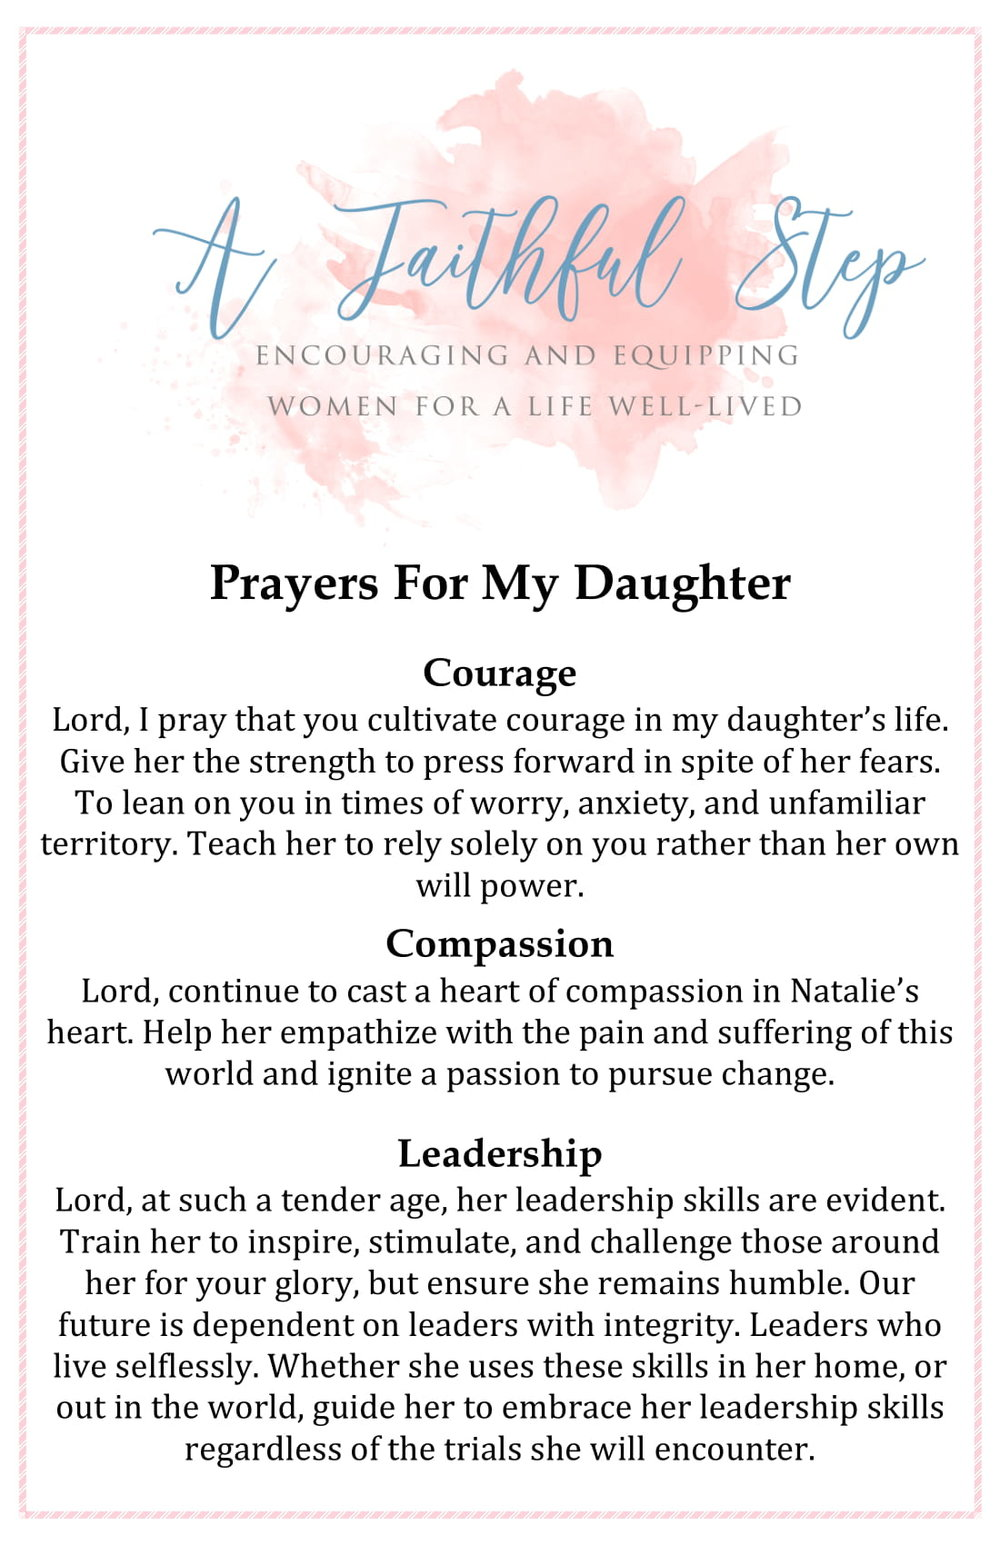 Prayers For My Daughter-1.jpg